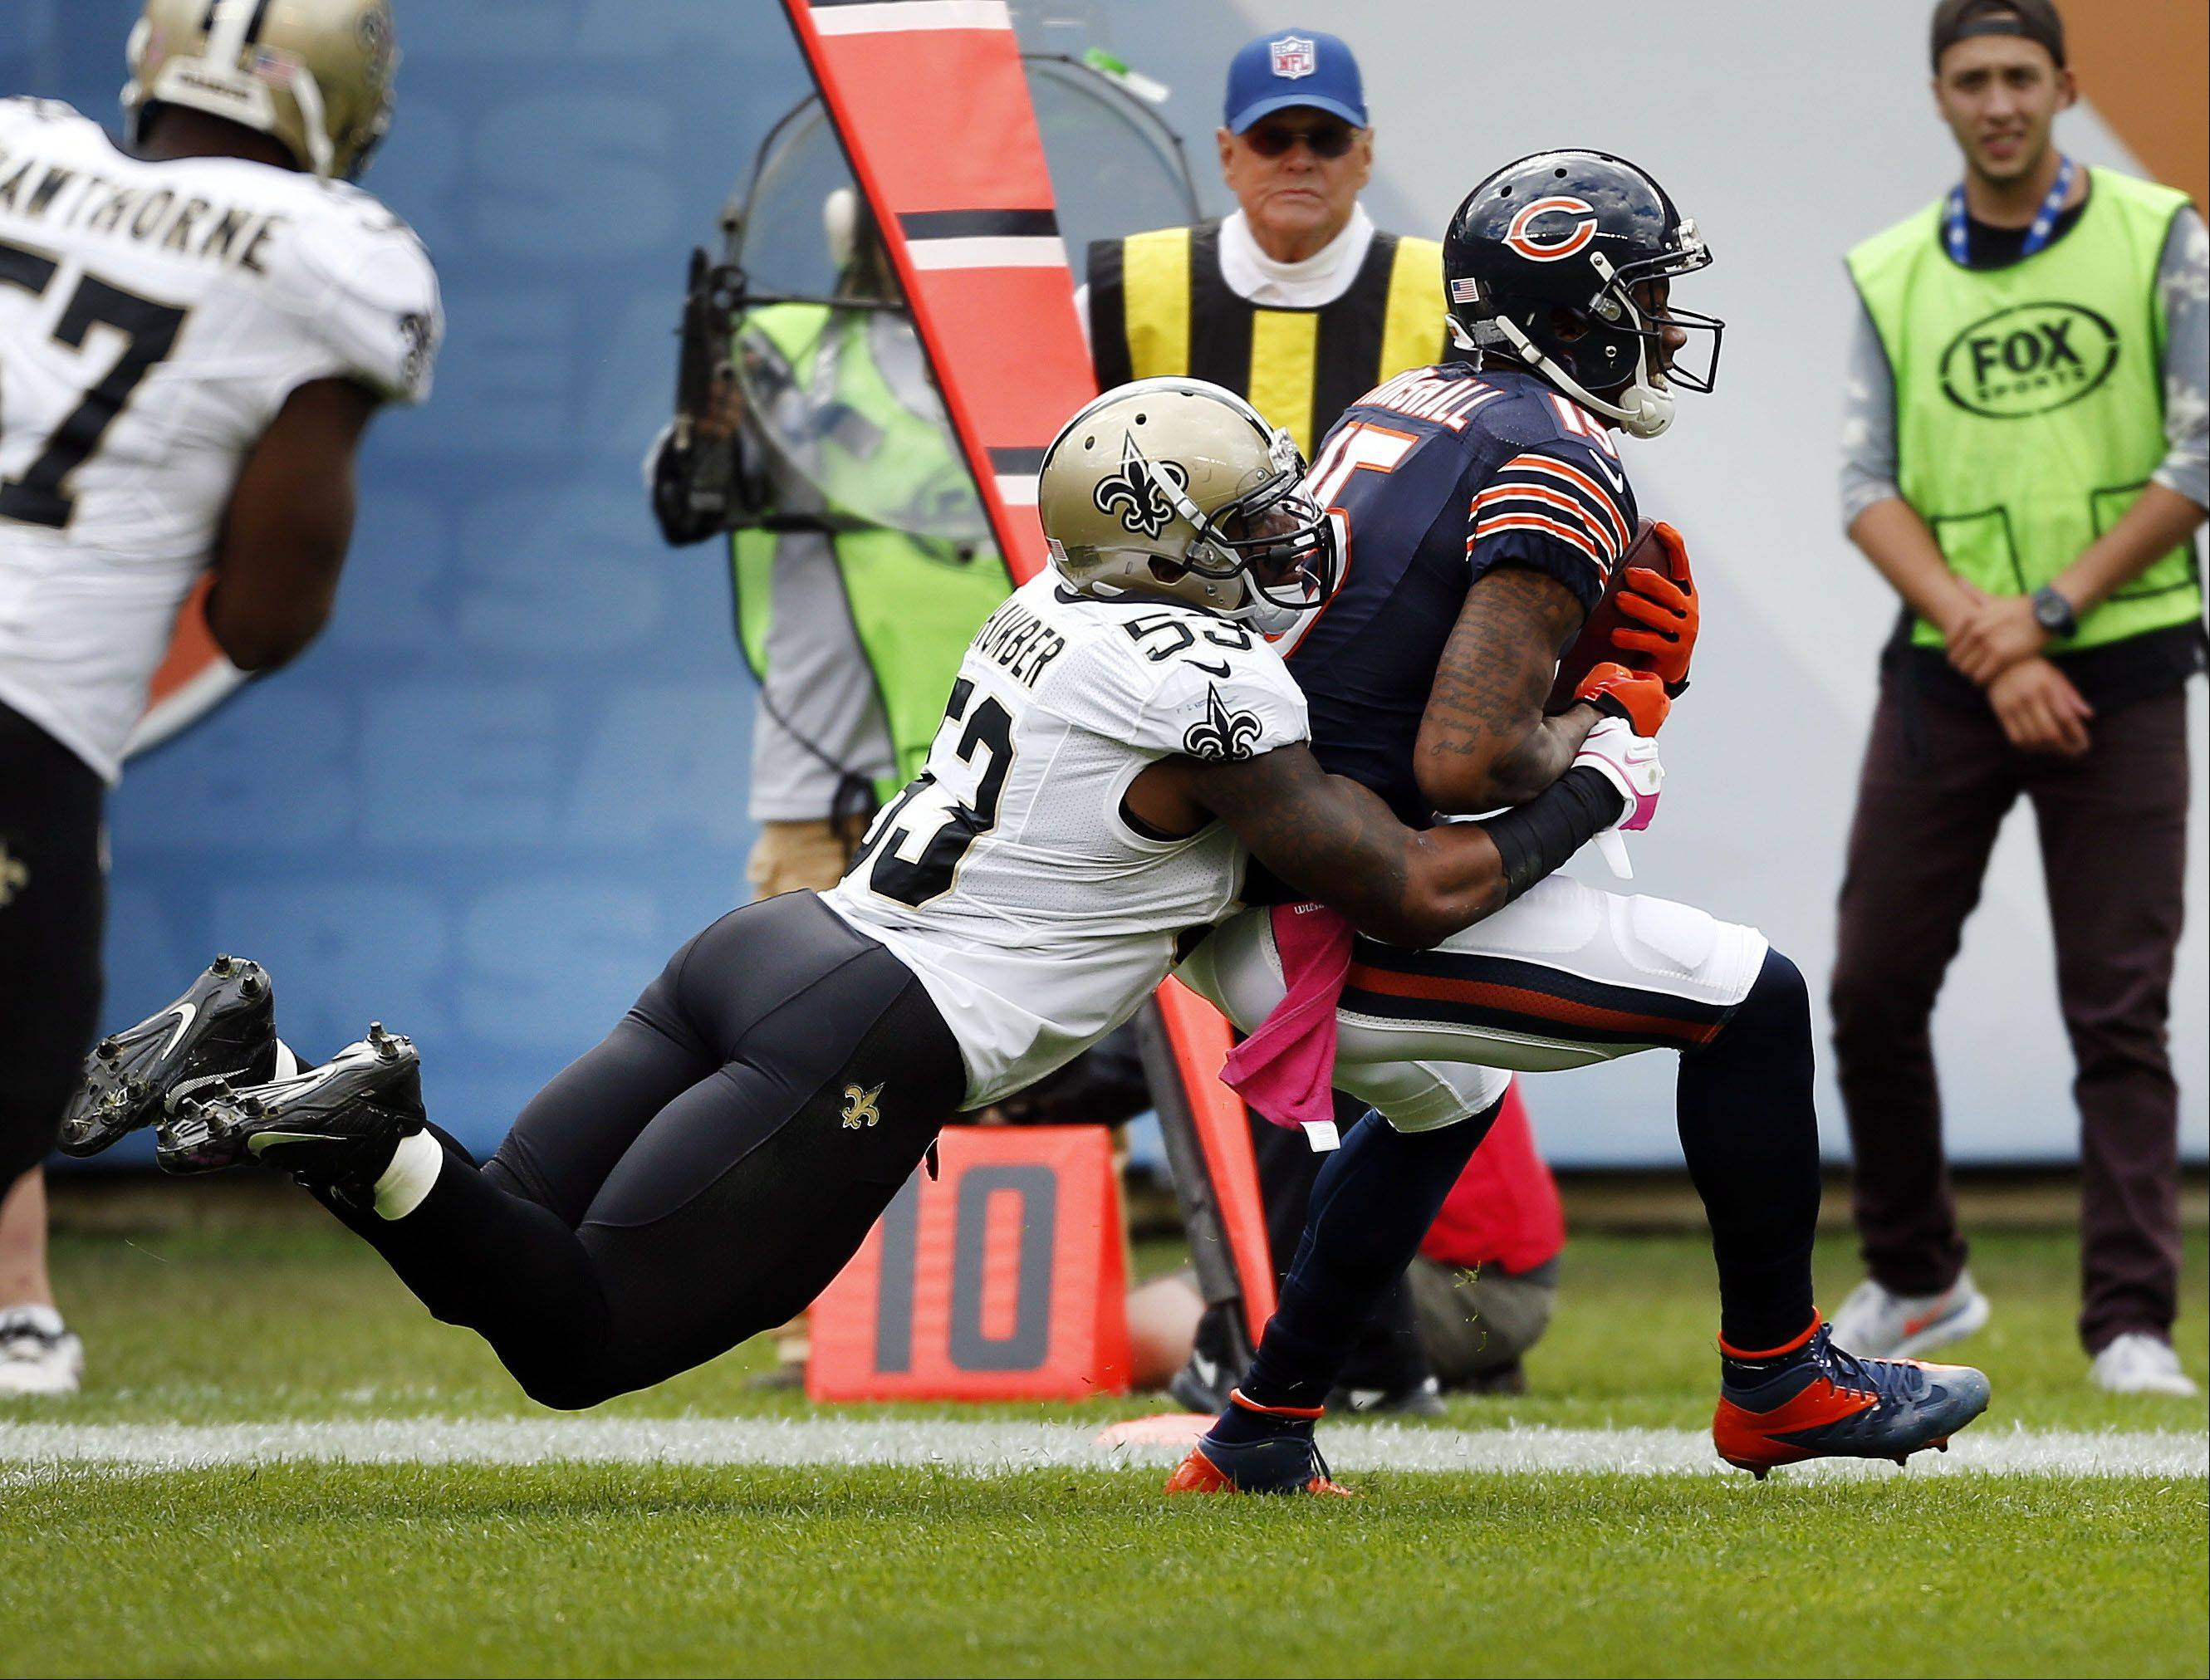 Bears wide receiver Brandon Marshall had season lows of 4 catches and 30 yards Sunday in the 30-18 loss to the Saints at Soldier Field, but one reception went for a touchdown.